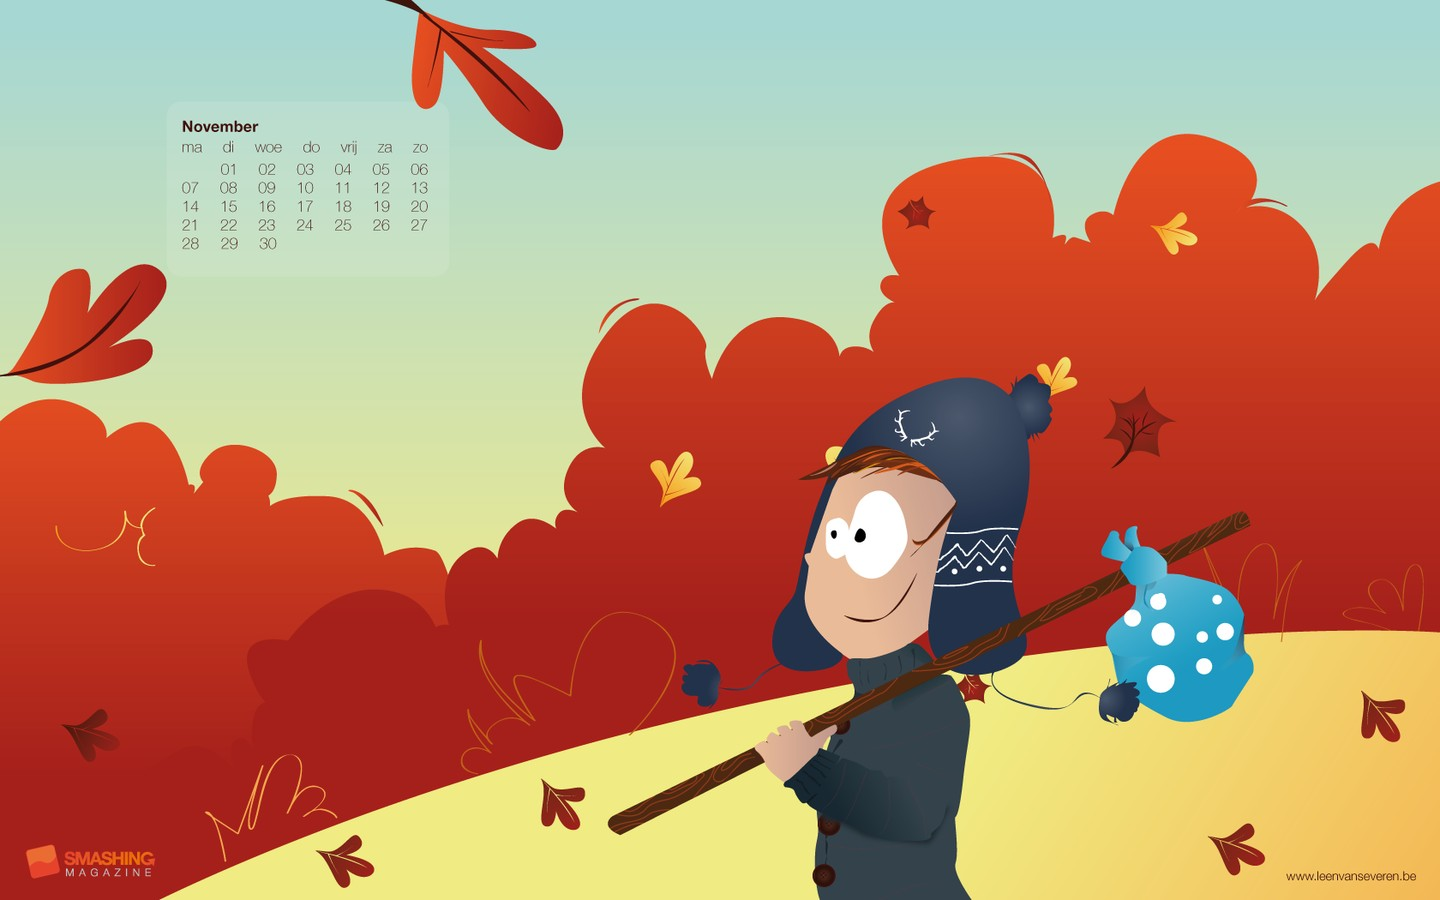 In January Calendar Wallpaper 30902